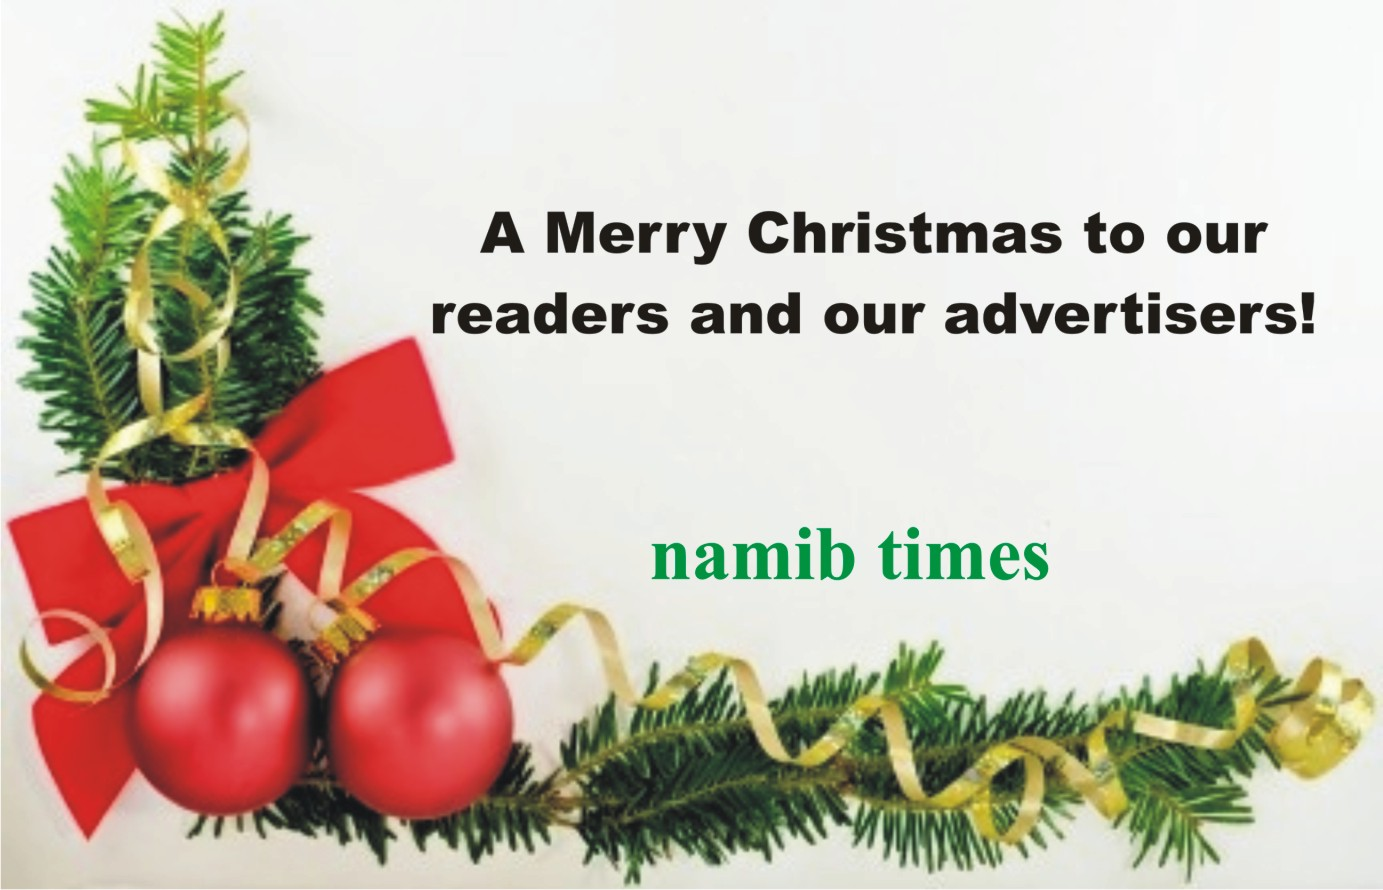 Namib Times wishes you a Merry Christmas